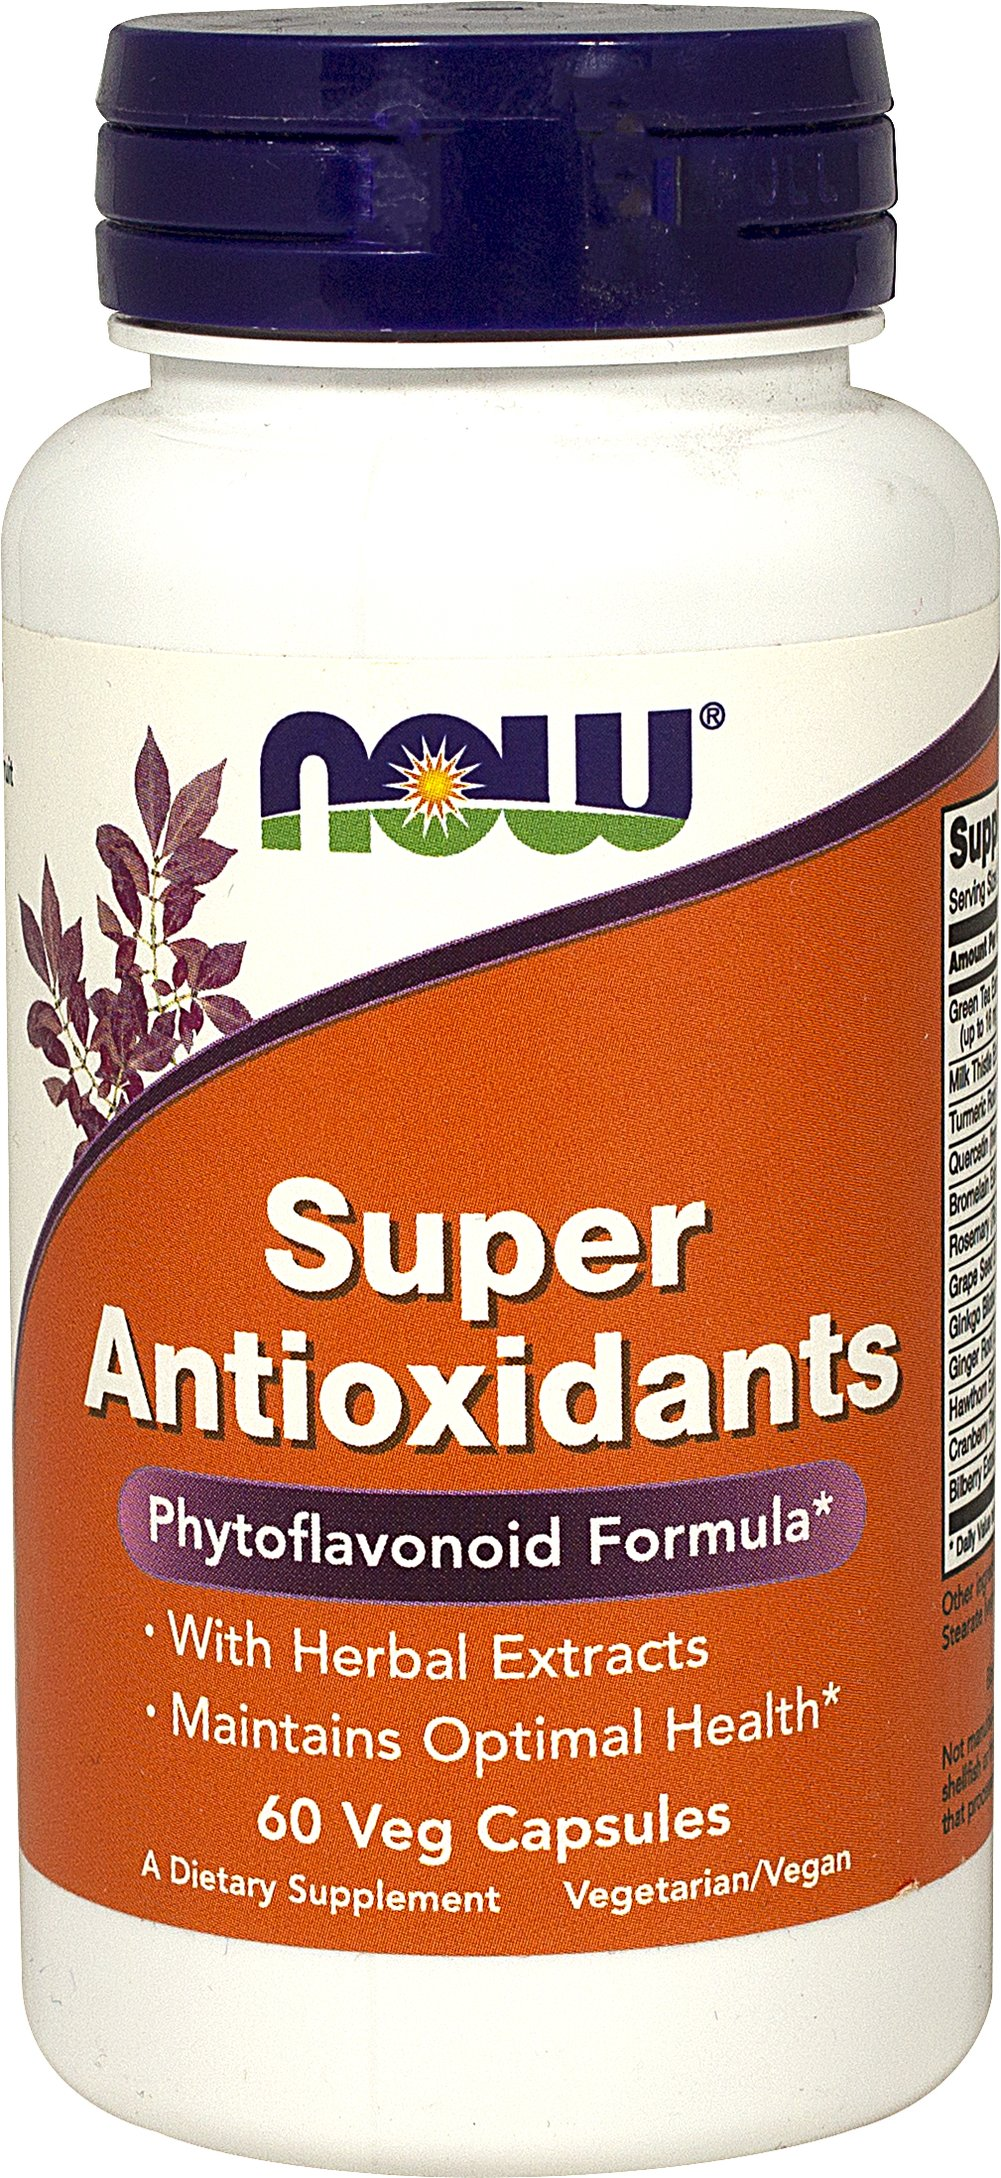 Super Antioxidants Phytoflavonoid Formula <p><strong>From the Manufacturer's Label:</strong></p><p>This comprehensive blend of potent herb and fruit extracts has been designed to provide a broad spectrum of flavonoids with scientifically demonstrated antioxidant activity and effectiveness.**   These herbs and fruits have been renowned throughout the world for centuries for their ability to maintain optimal well being.**</p><p>Manufactured by Now&#174